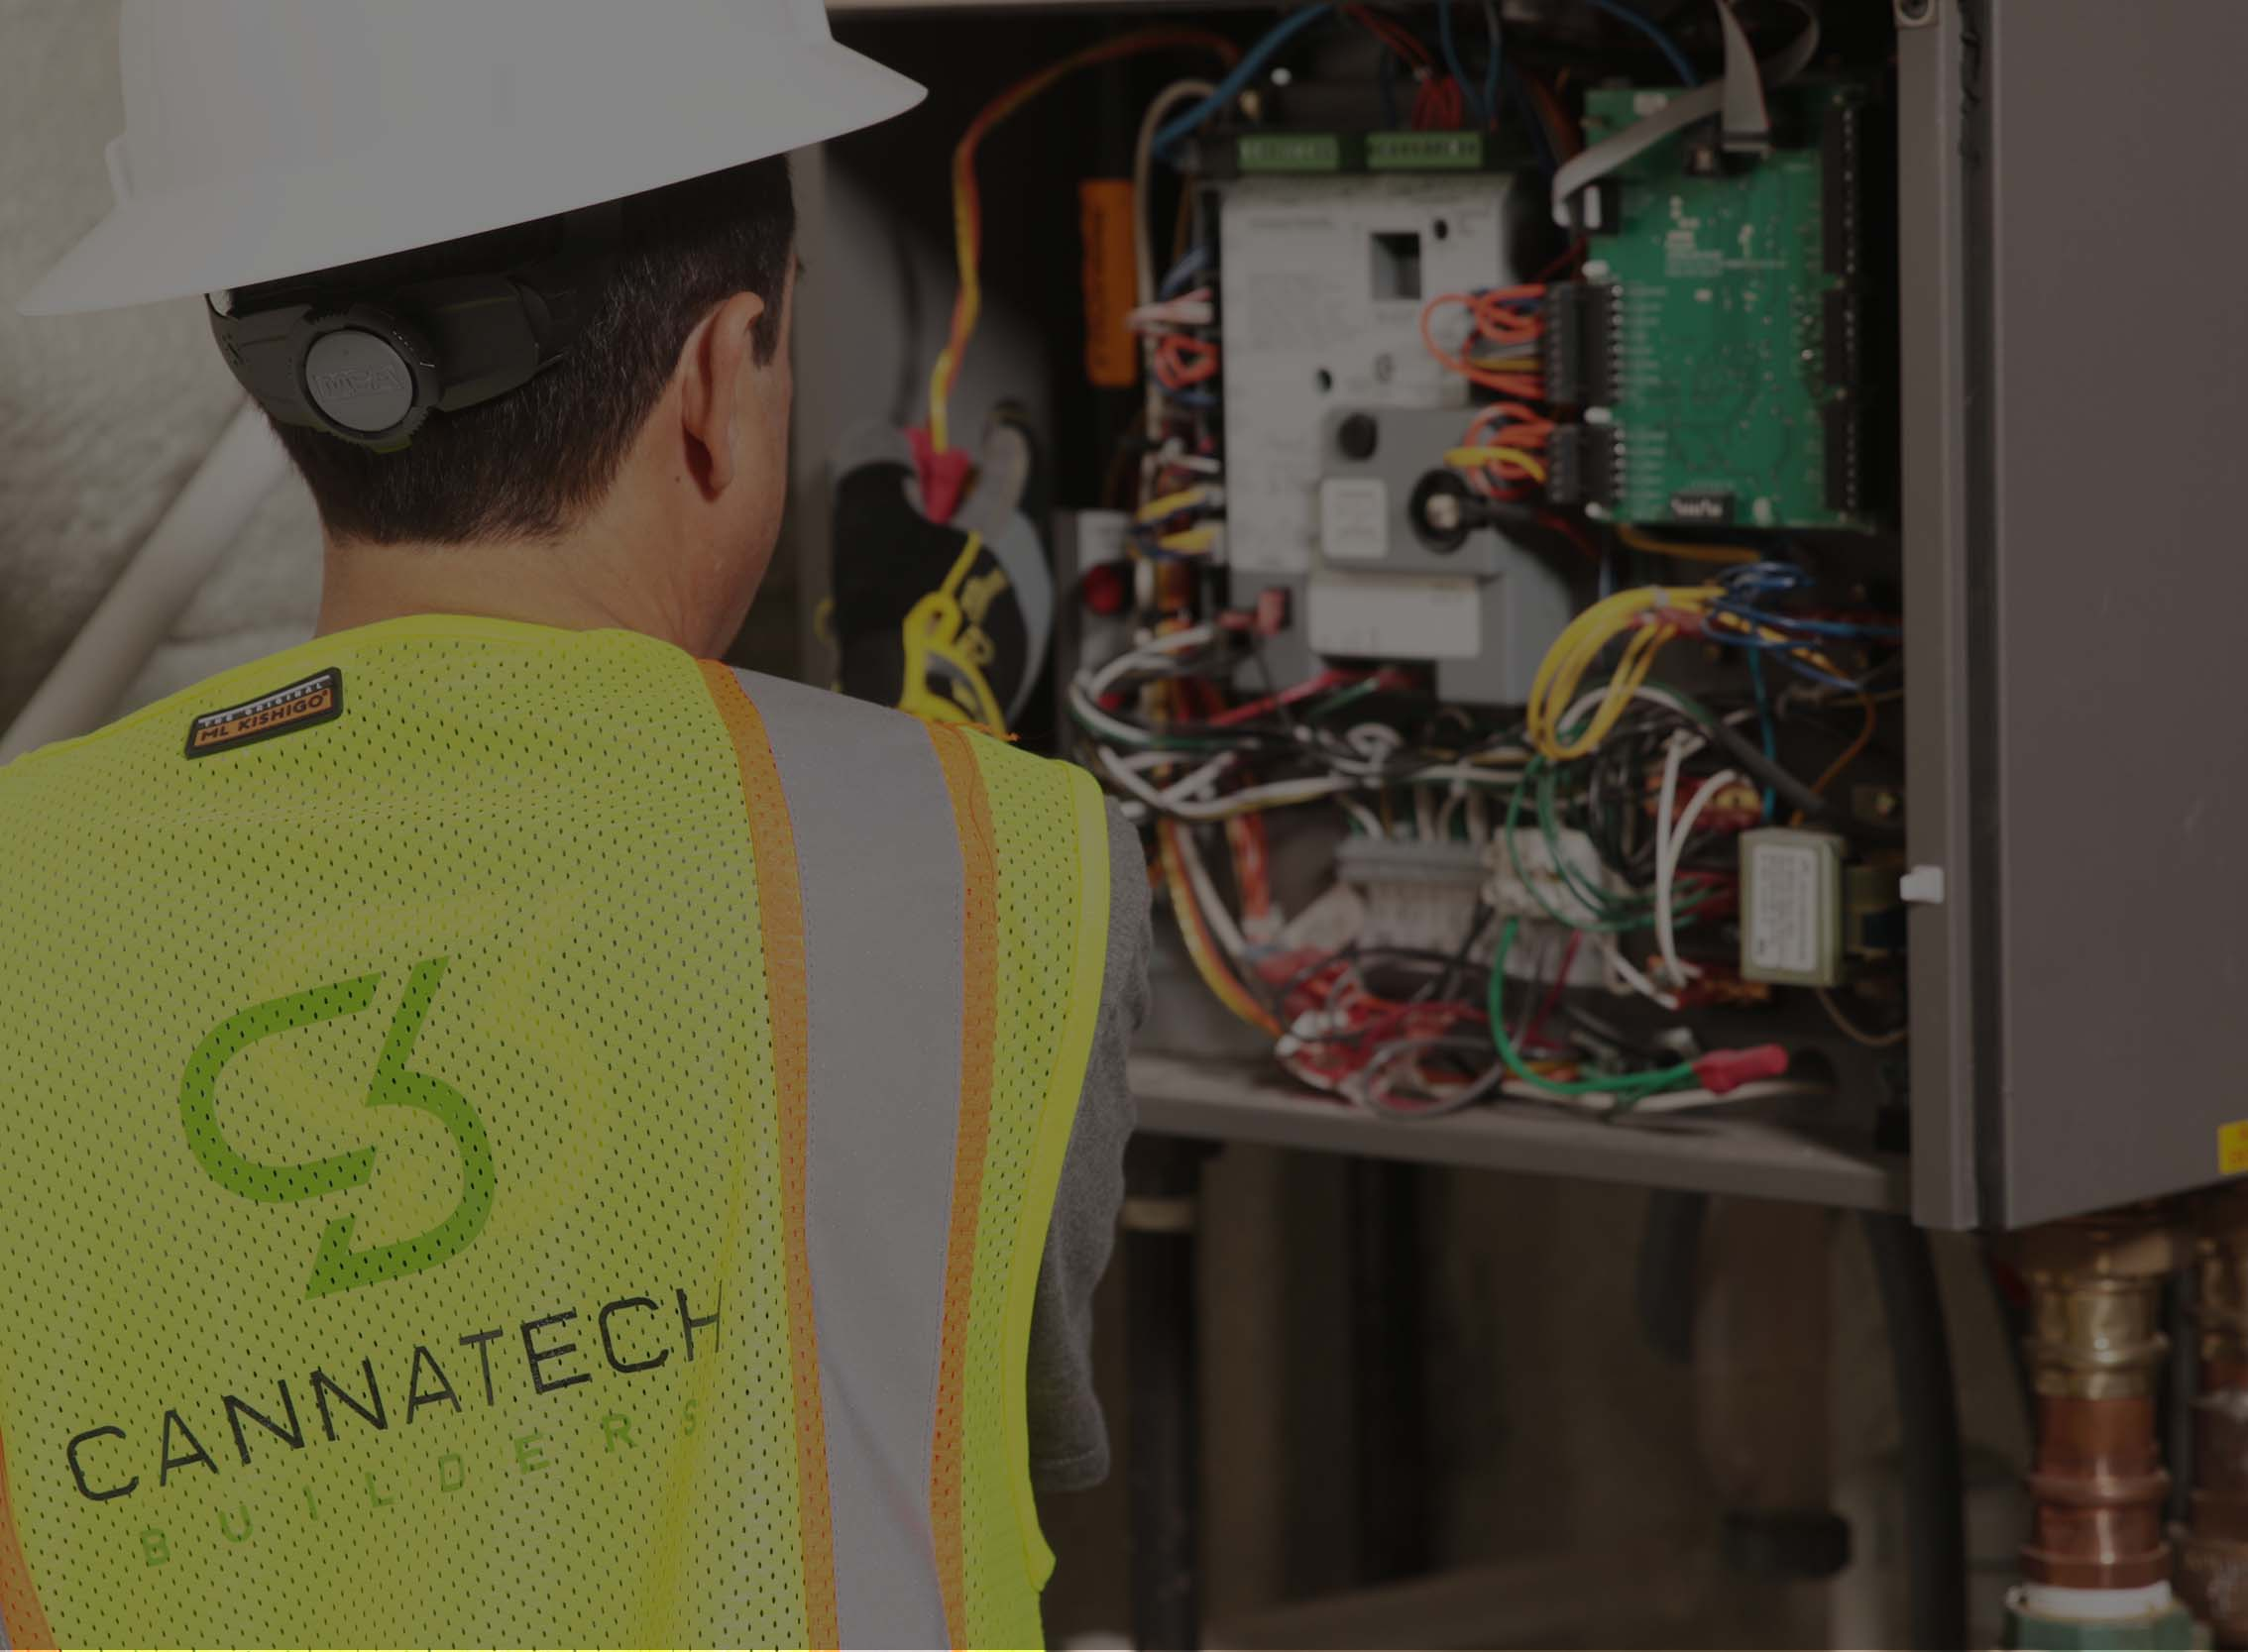 24x7 Repair Services - 200 service technicians & electricians ready to mobilize rapidly